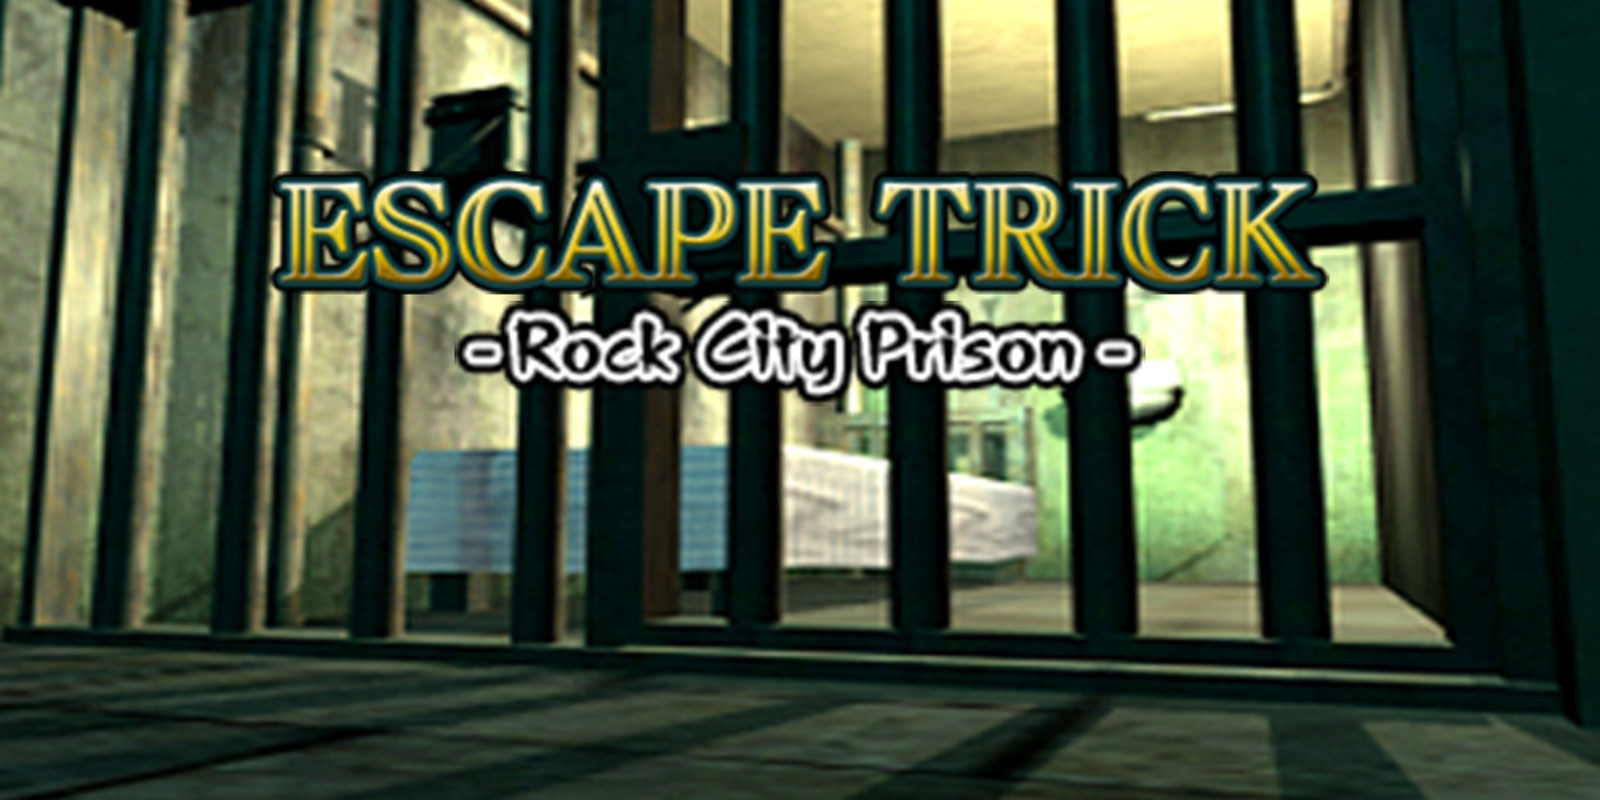 GO Series: Escape Trick - Rock City Prison